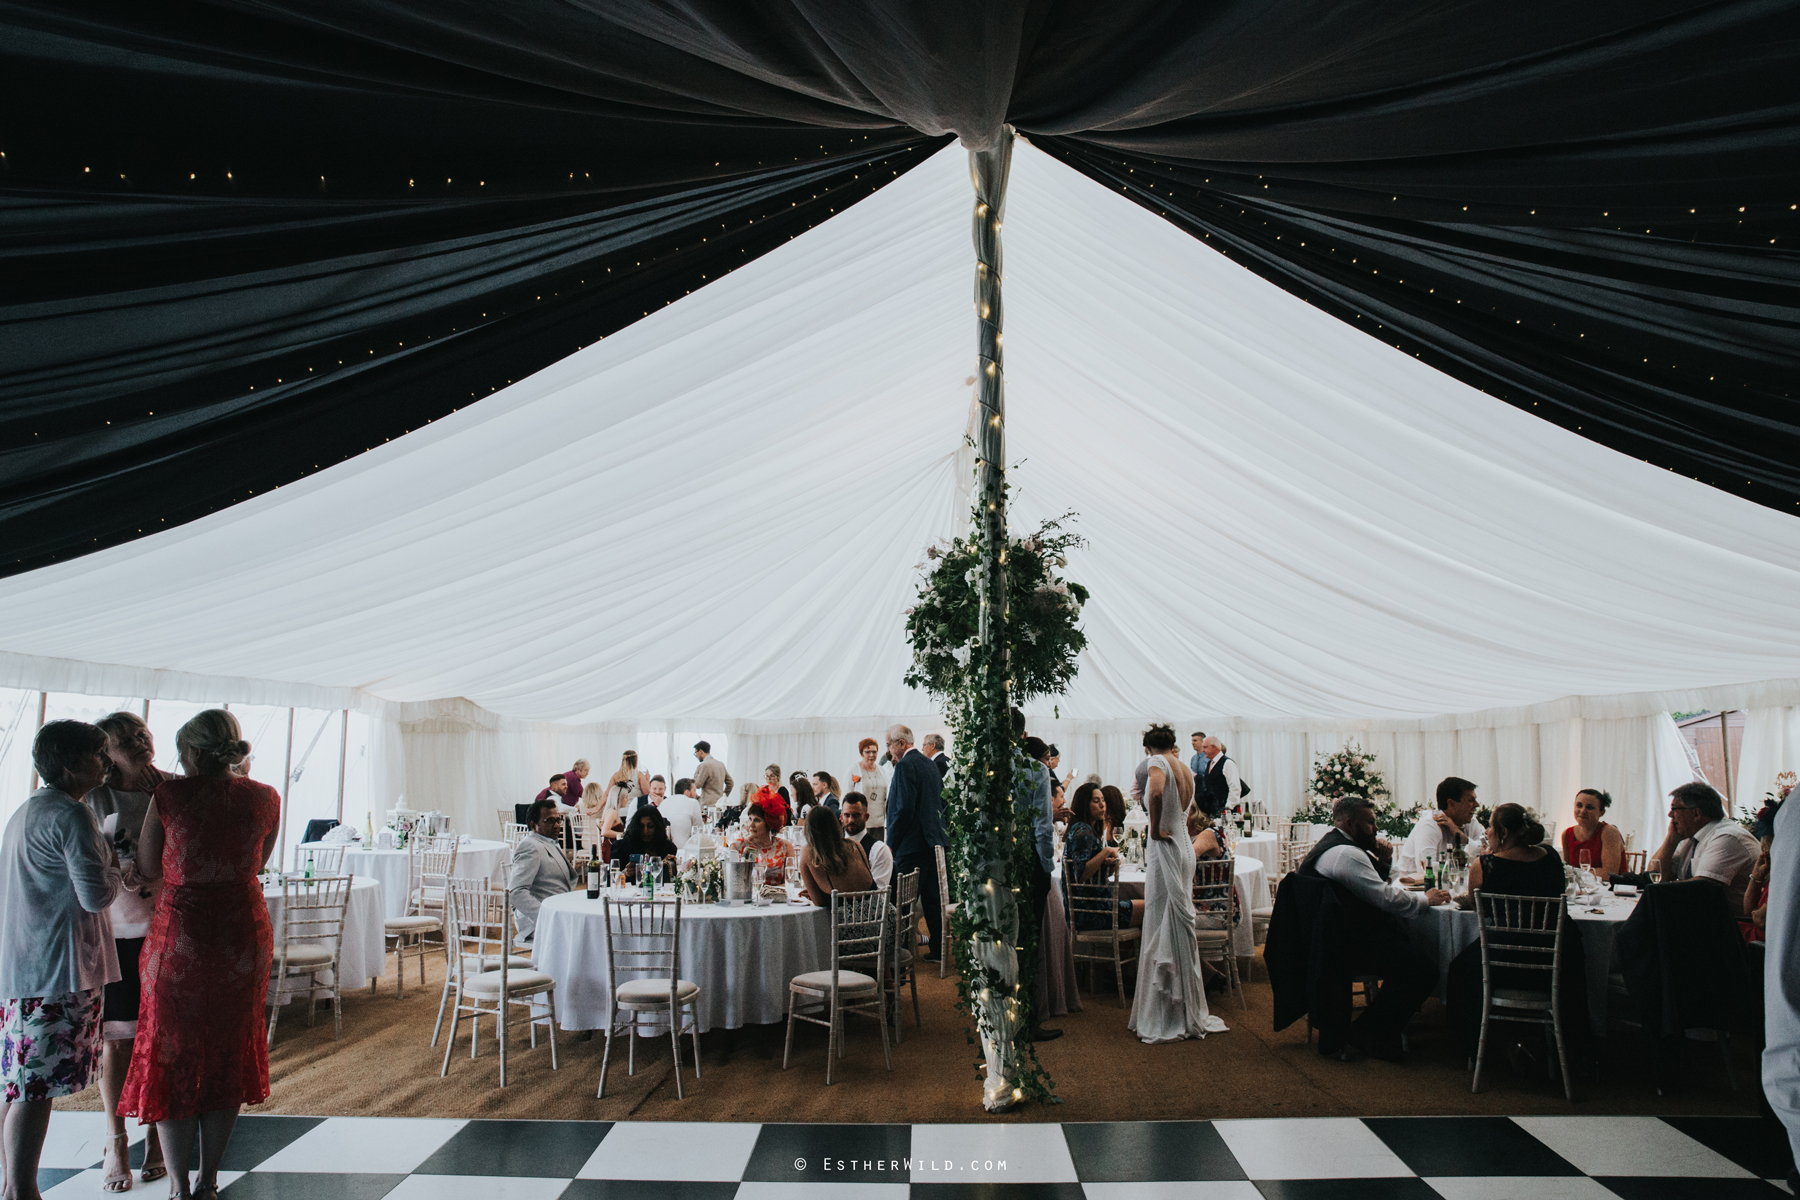 Wootton_Wedding_Copyright_Esther_Wild_Photographer_IMG_3062.jpg